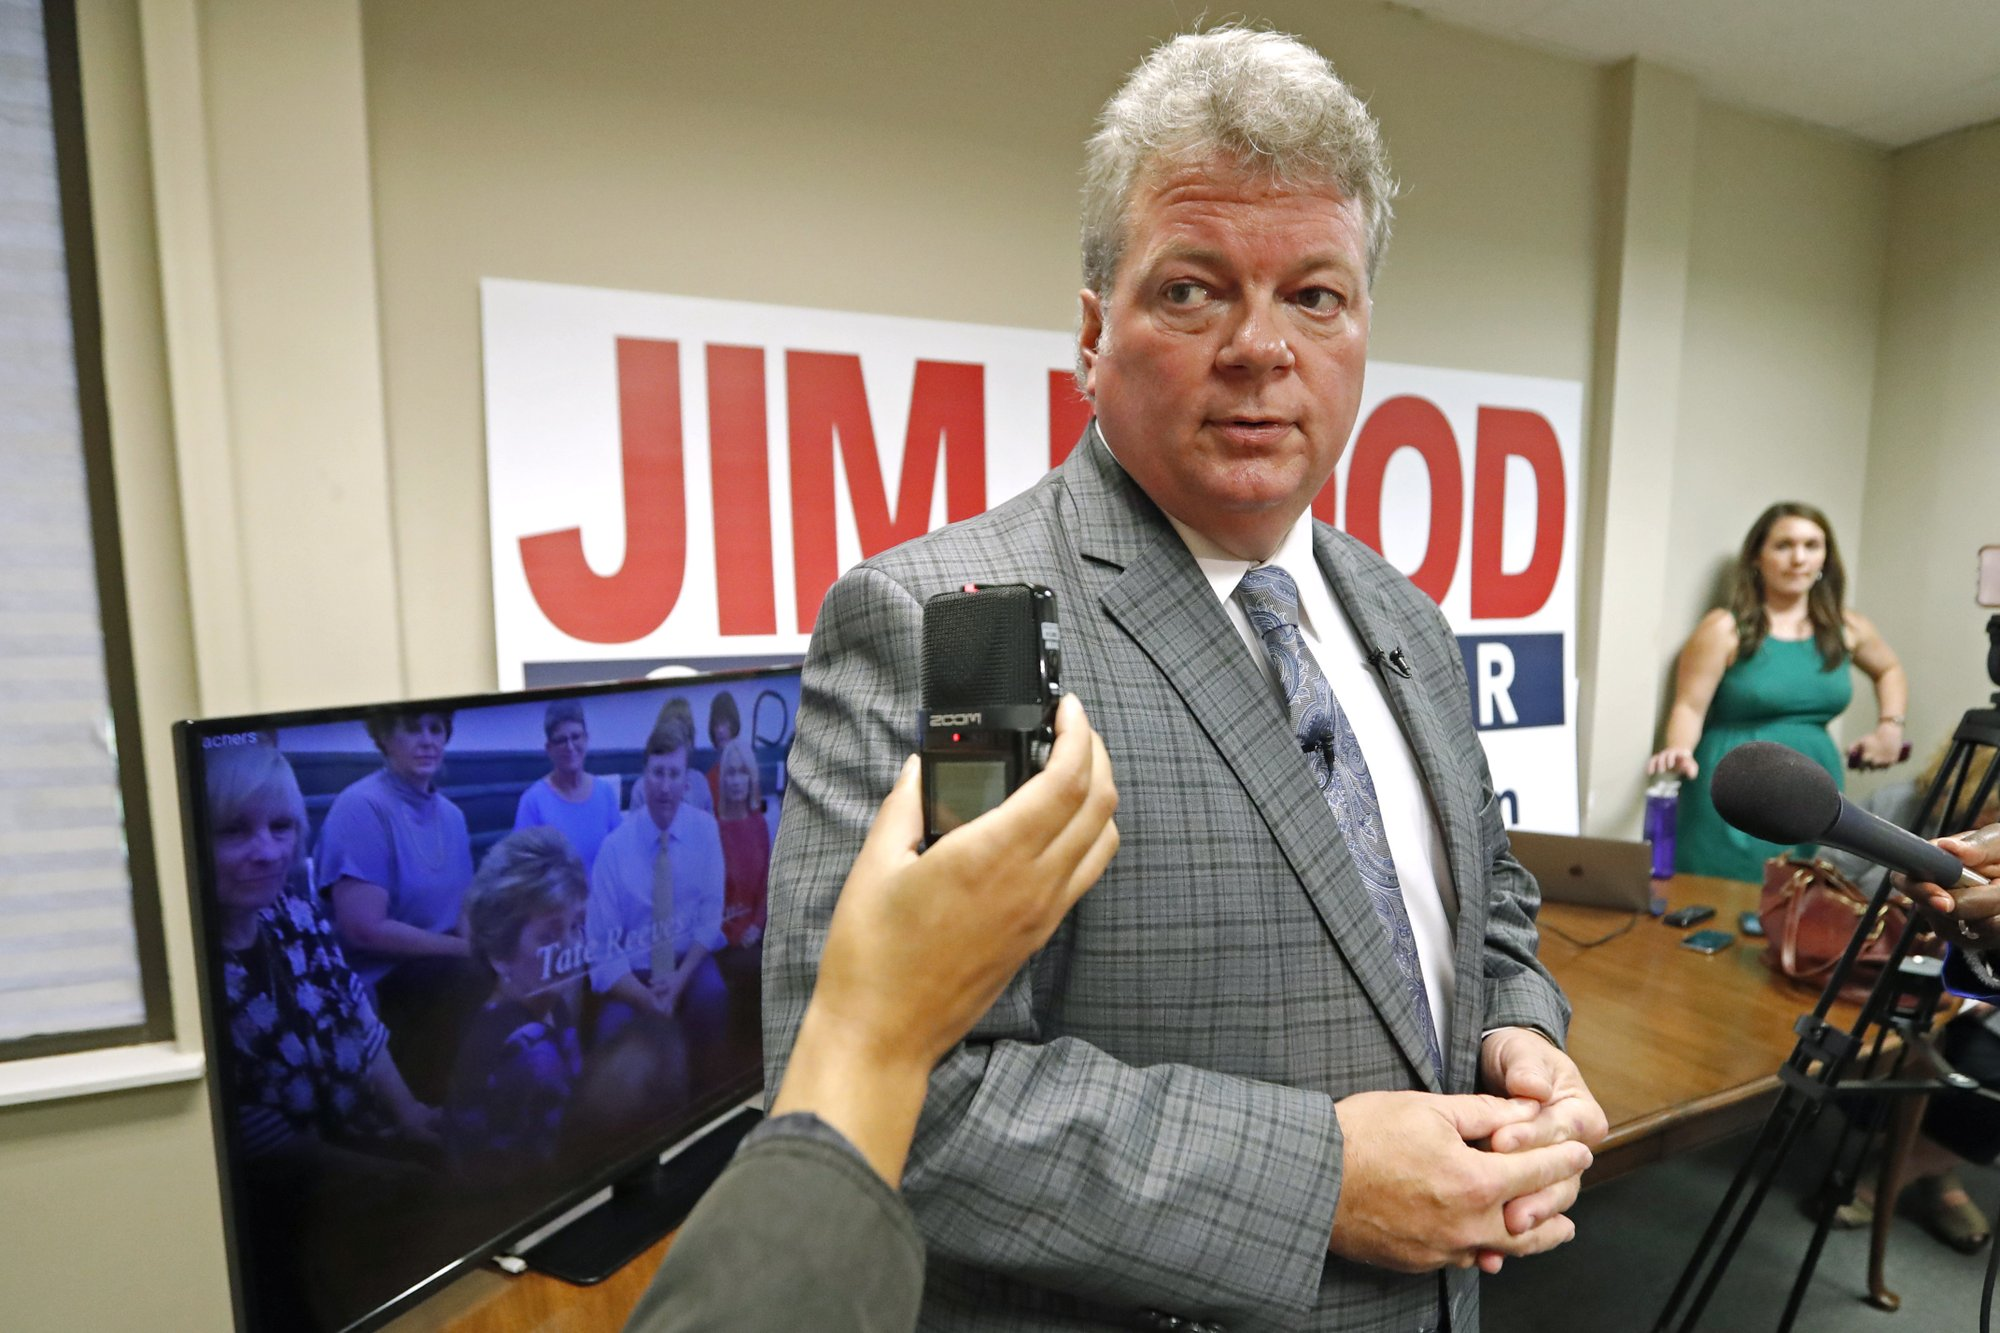 Hood: Reeves commercial filmed at private school is 'phony'